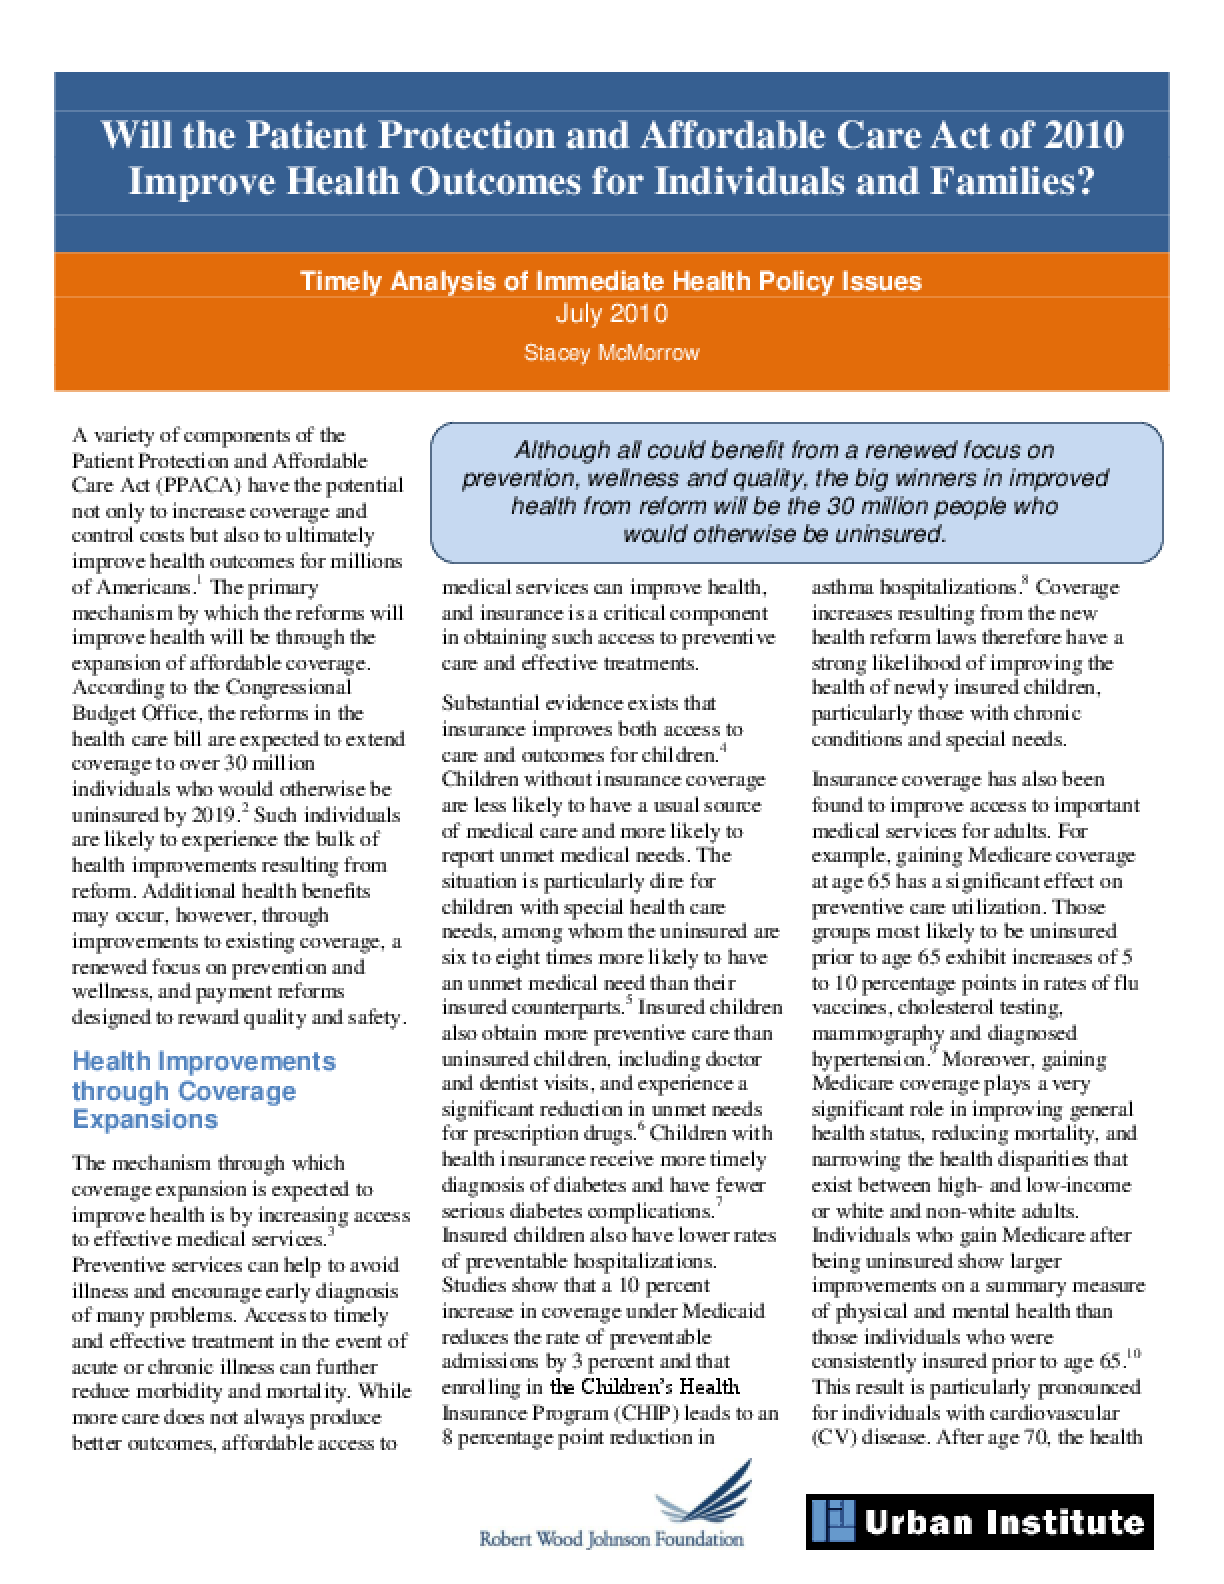 Will the Patient Protection and Affordable Care Act of 2010 Improve Health Outcomes for Individuals and Families?